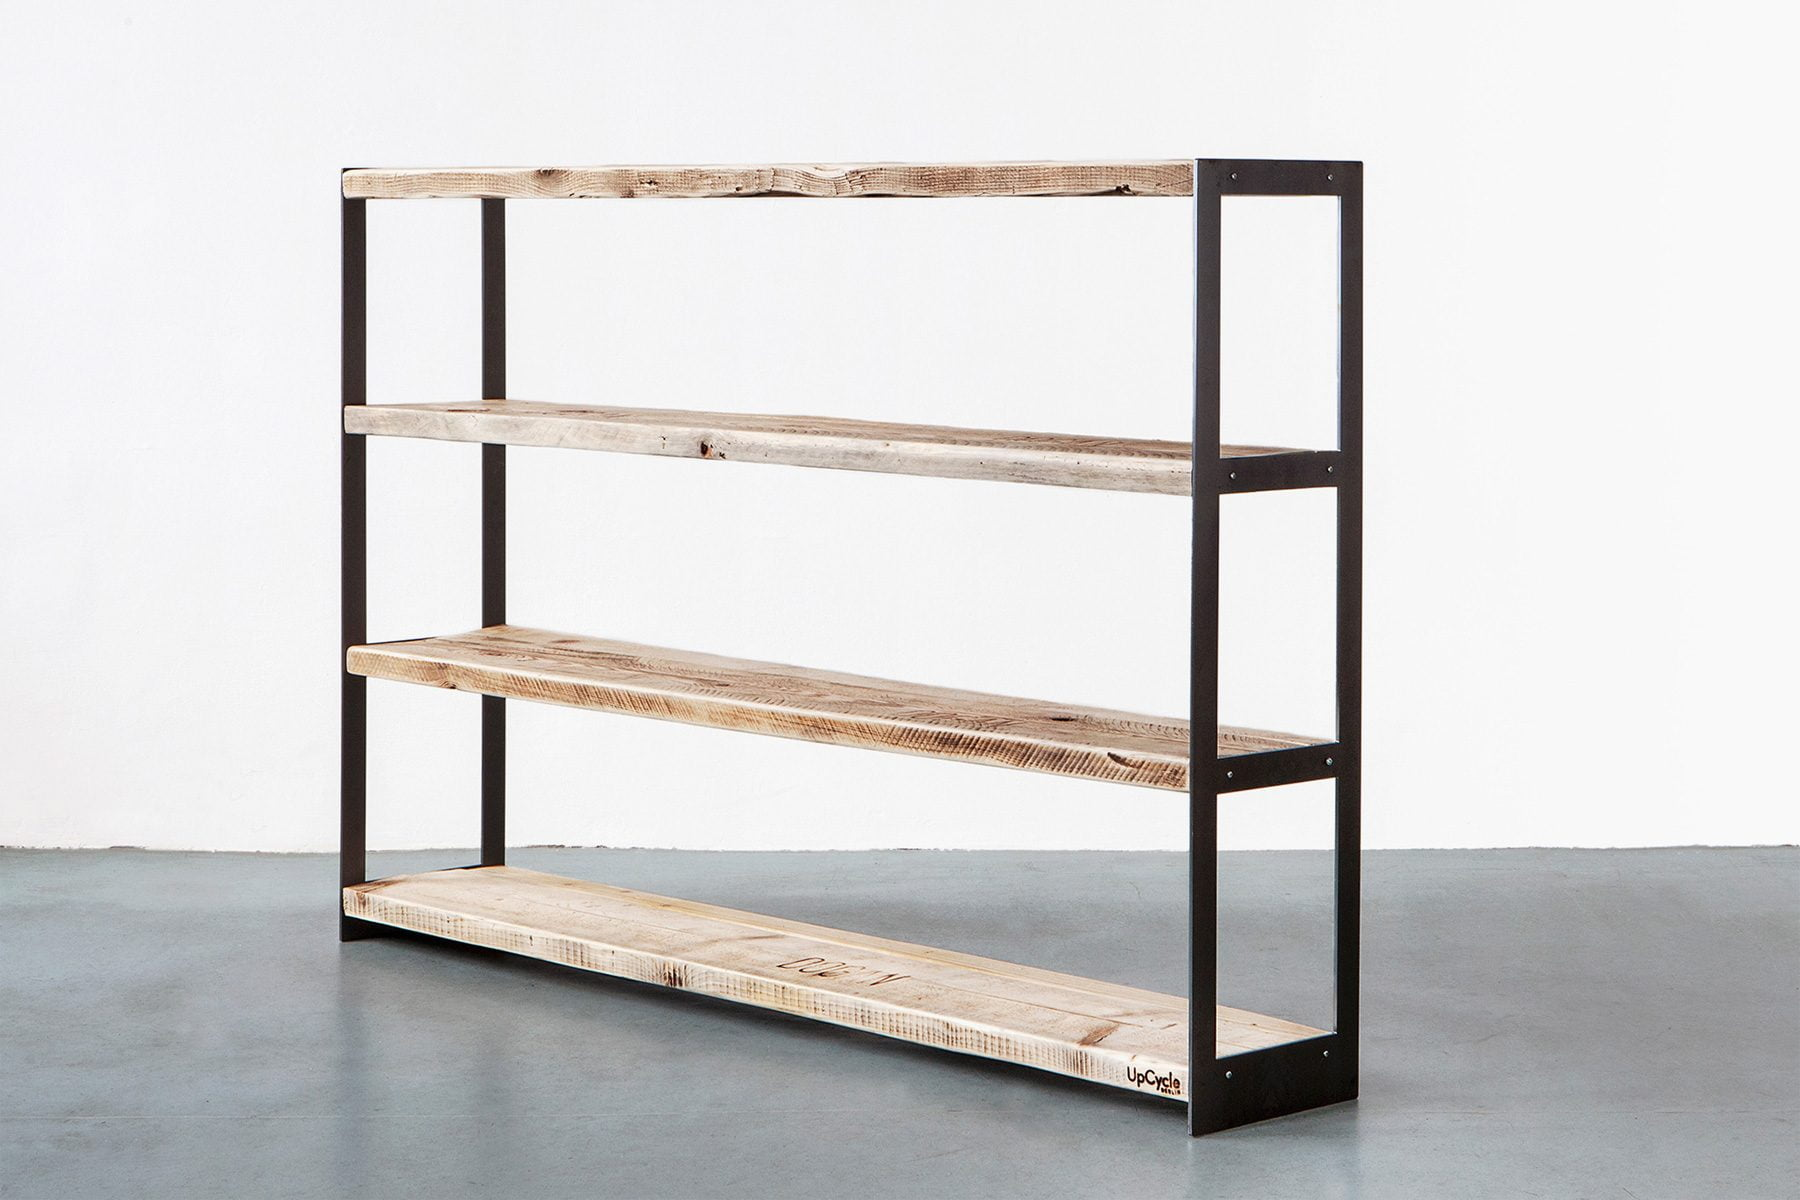 UpCycle-Berlin-PALINDROM-Sideboard_Breit